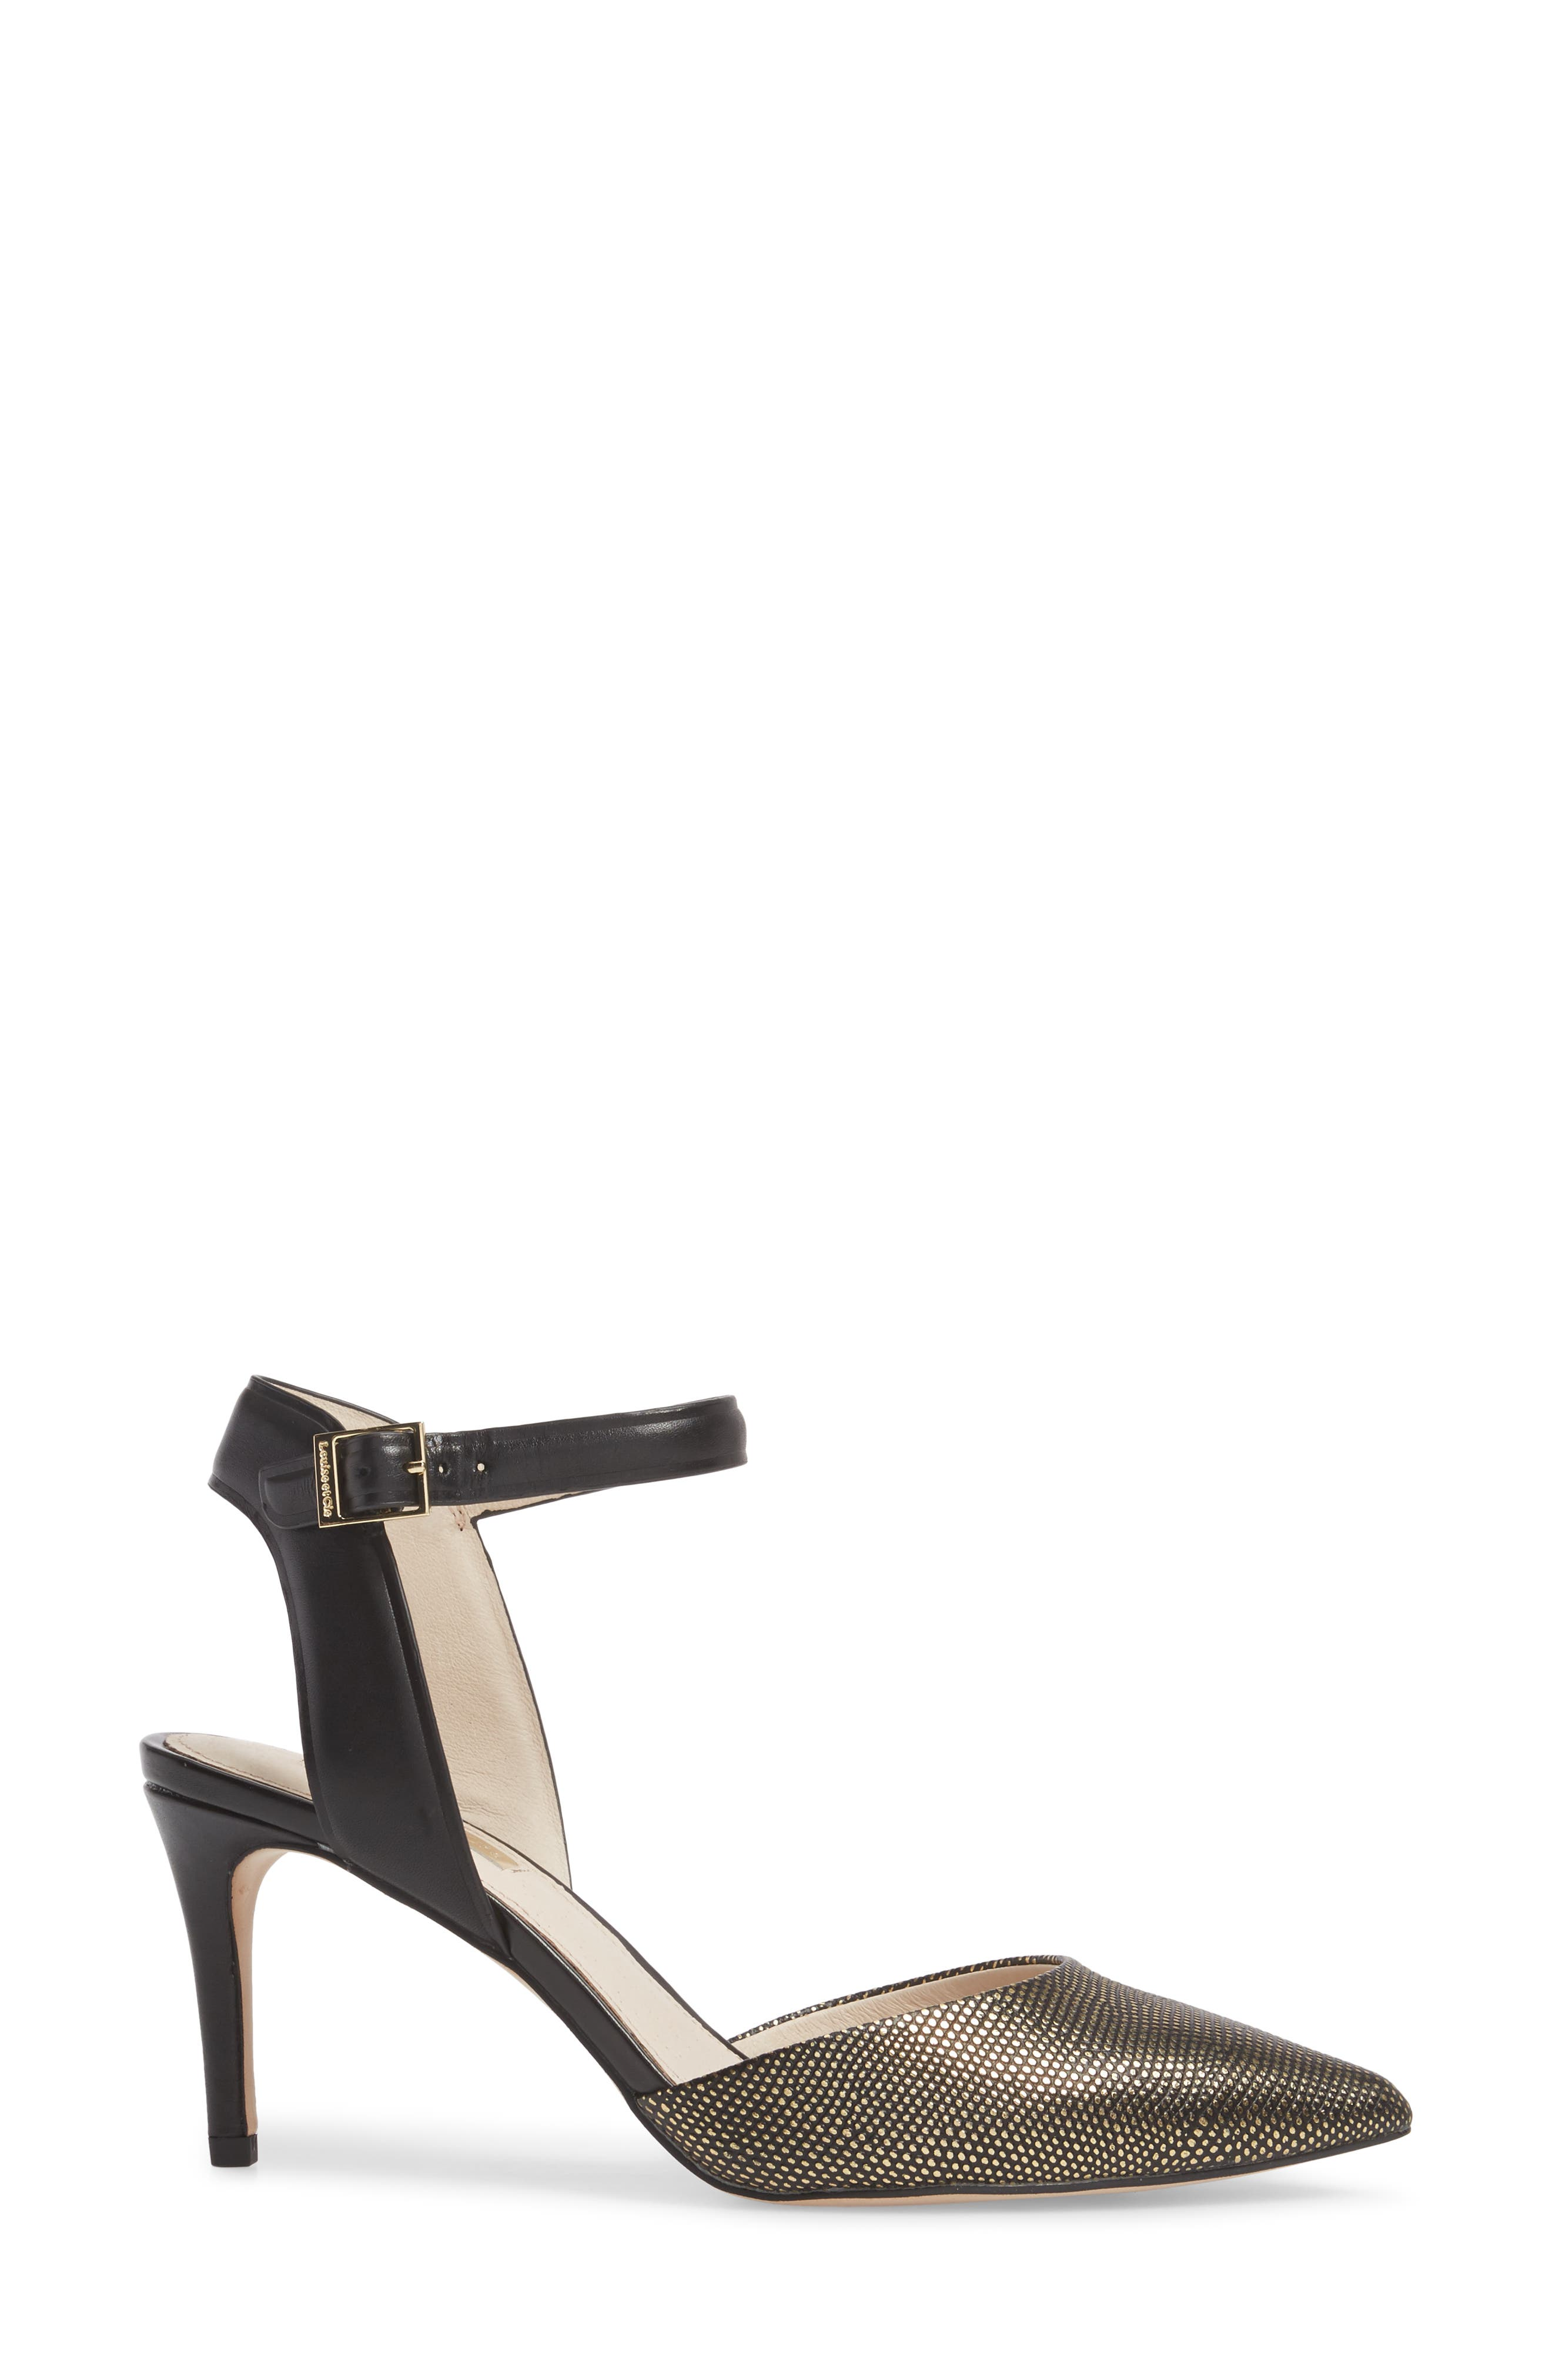 Kota Ankle Strap Pump,                             Alternate thumbnail 3, color,                             002